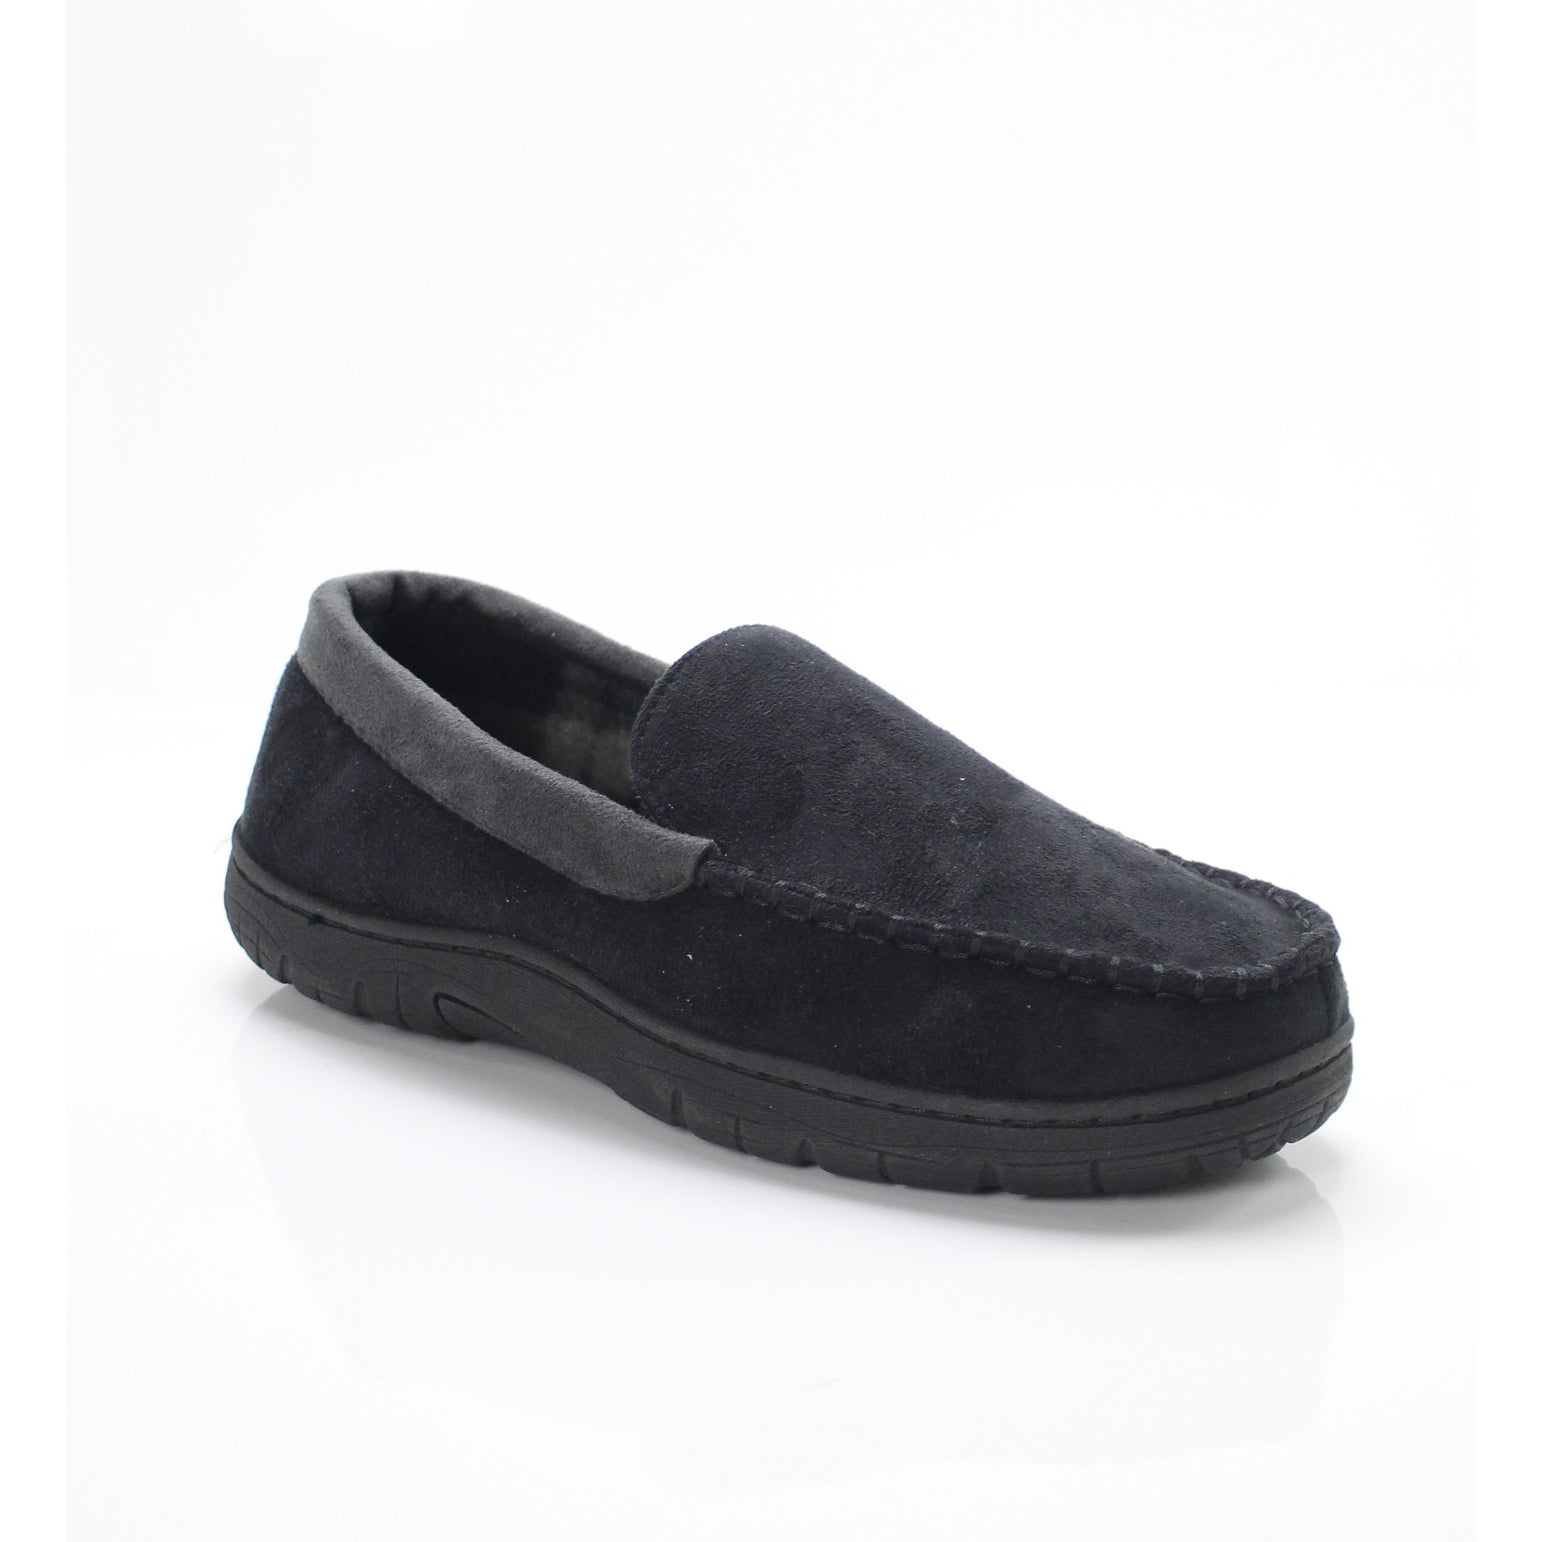 9.5-10.5) Moccasin Slippers